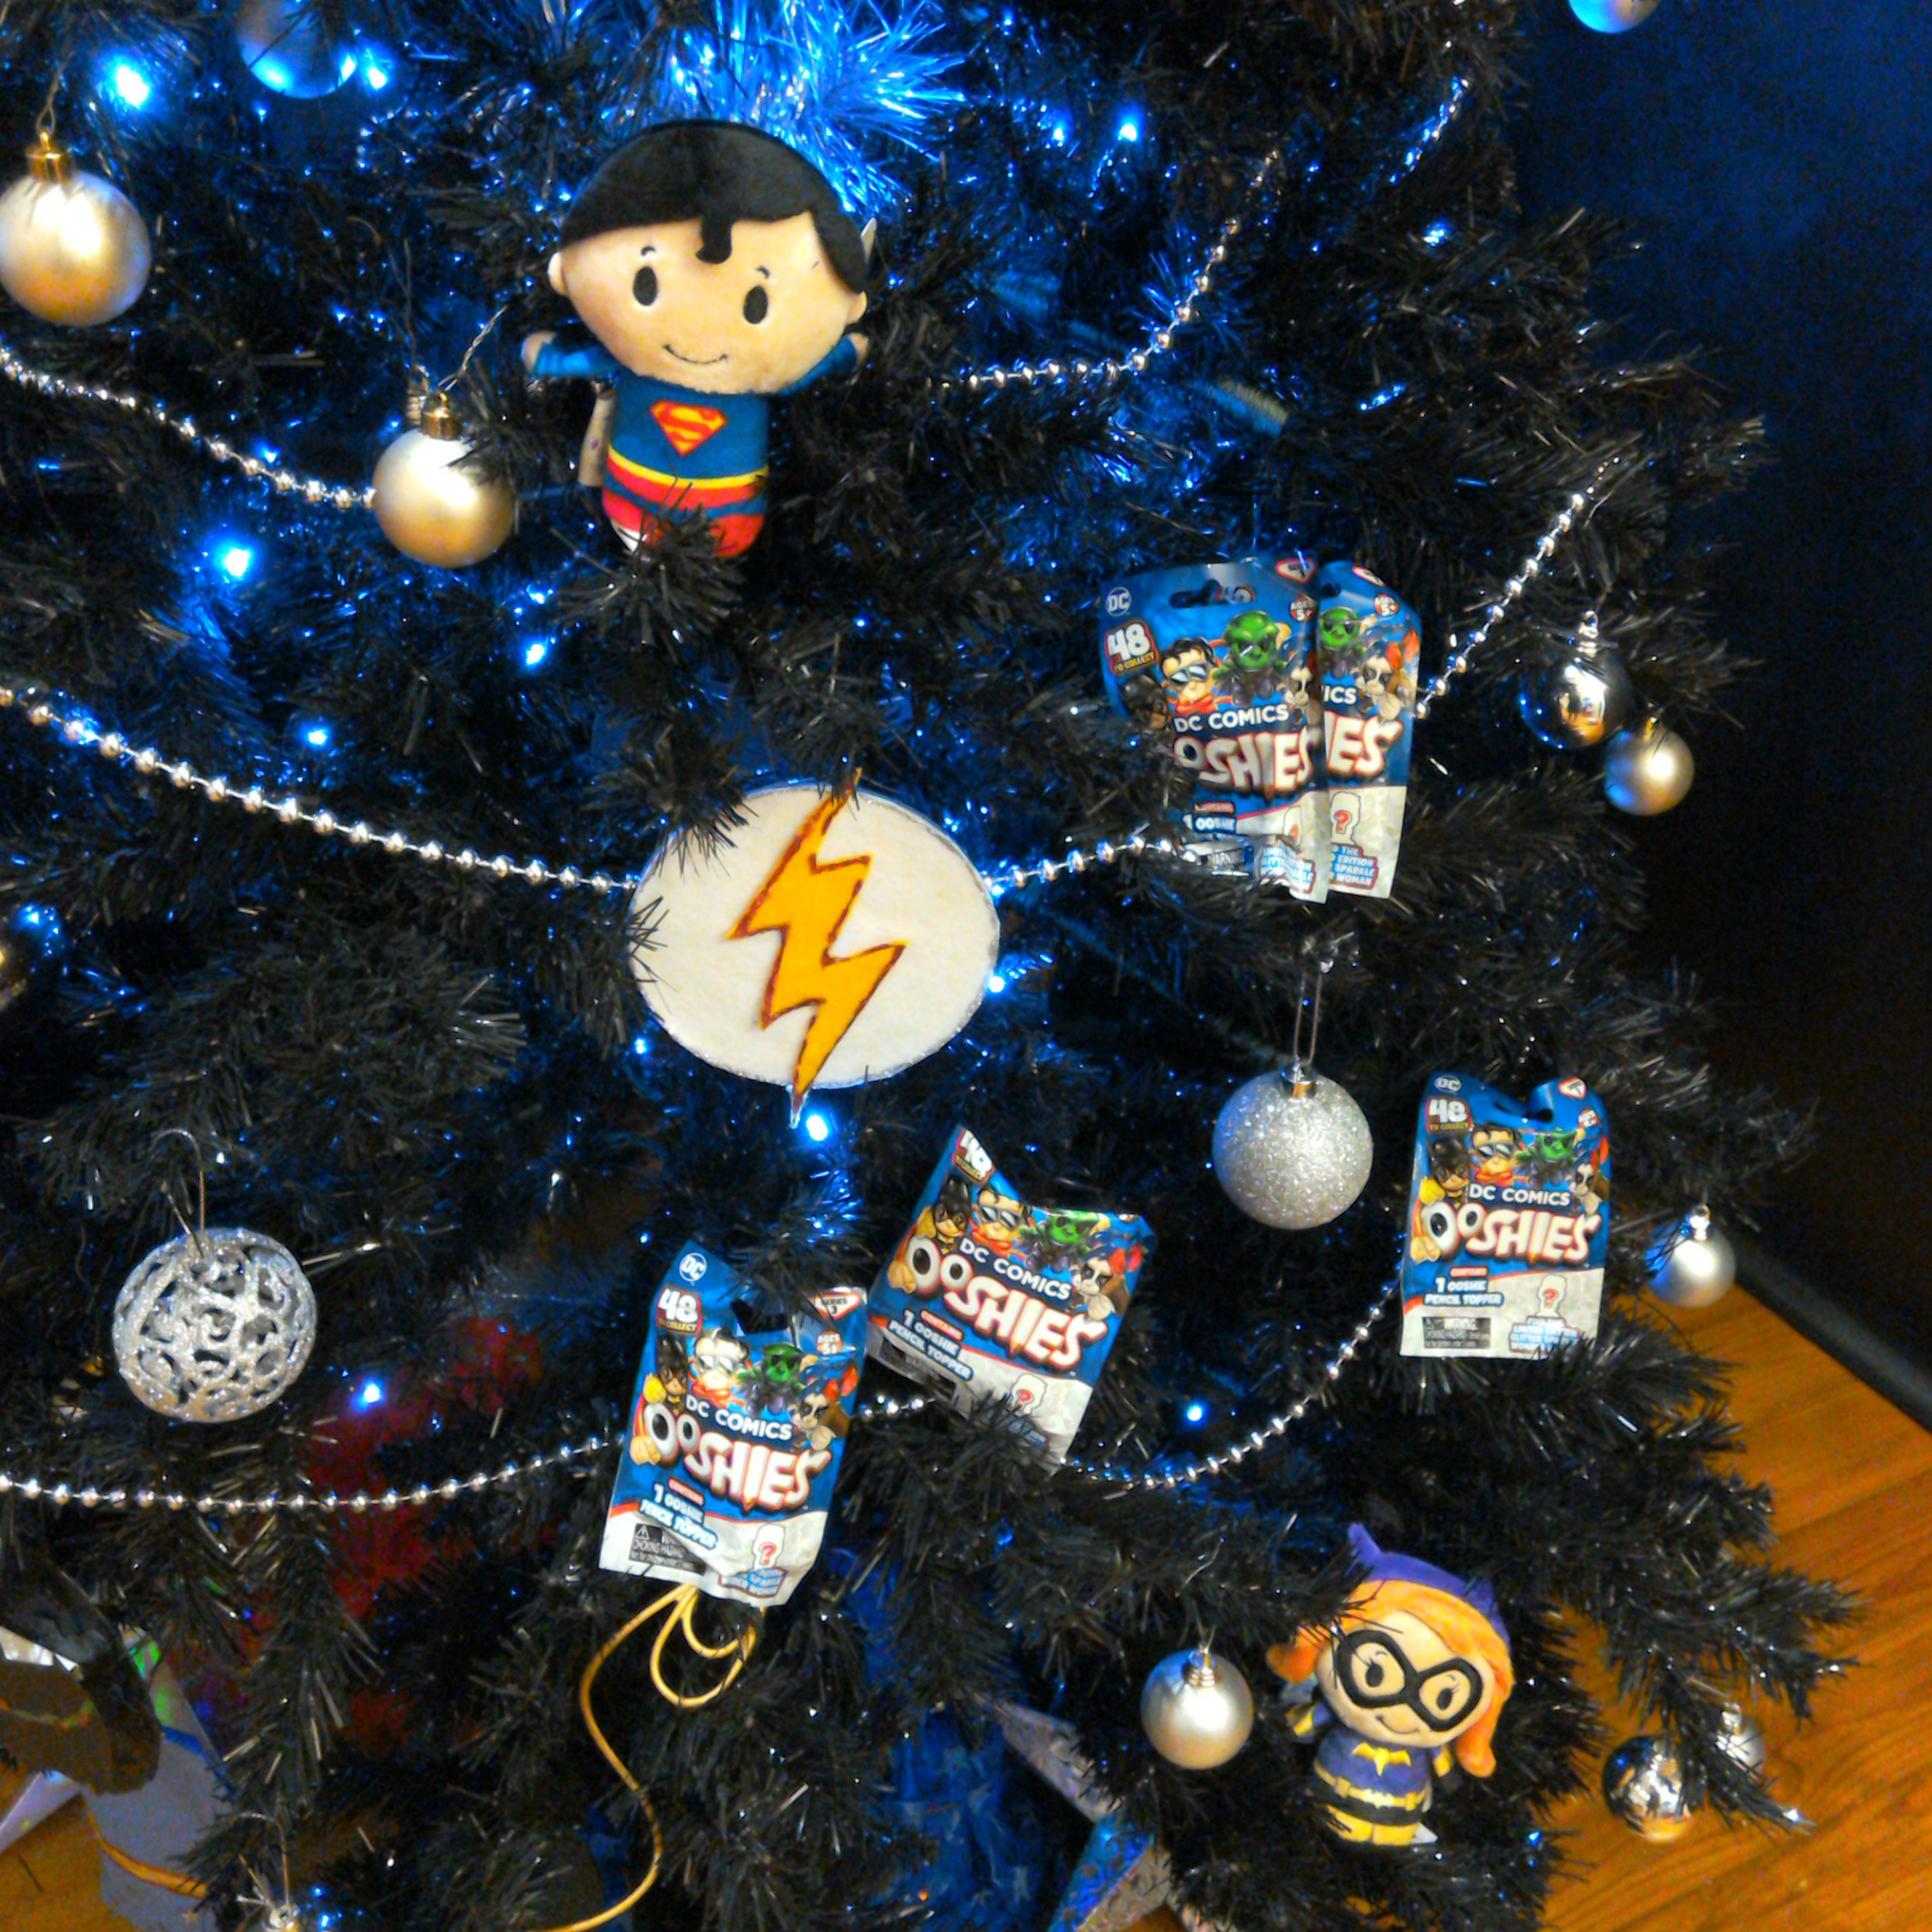 DC Comics Christmas